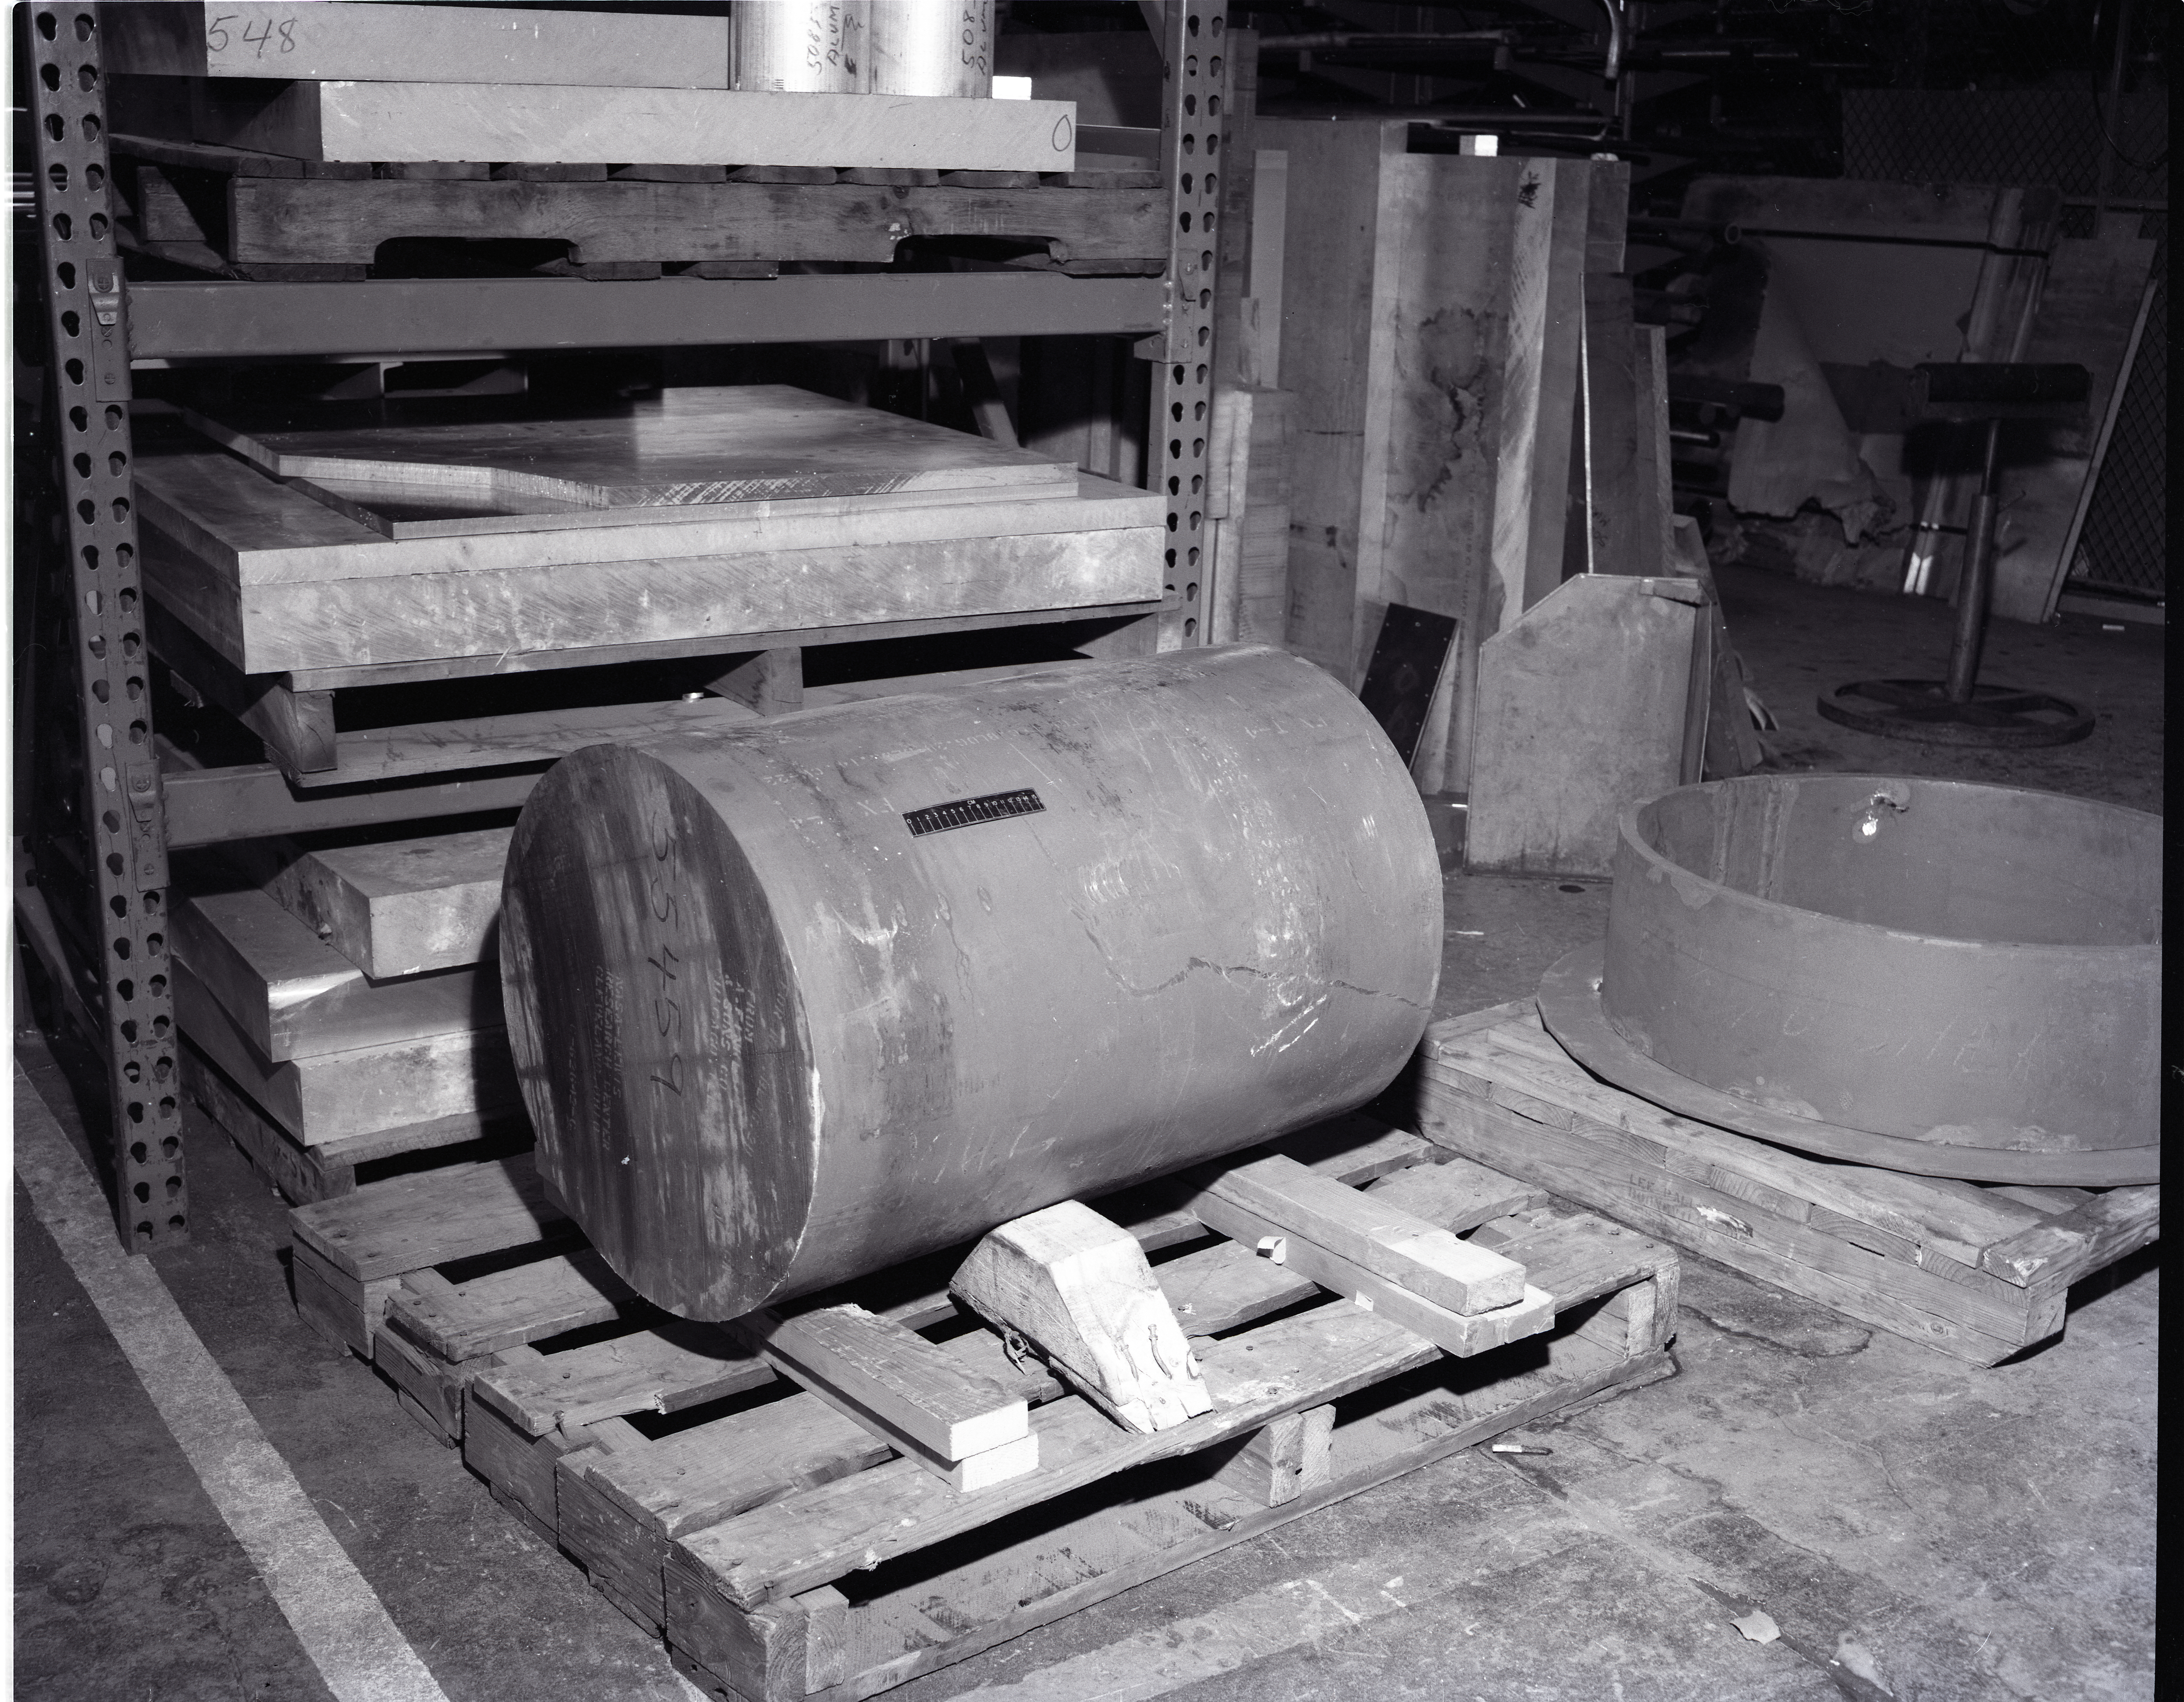 BLADE SPINDLE FORGINGS AND BEARING HOUSINGS FOR 100 KW KILOWATT WINDMILL